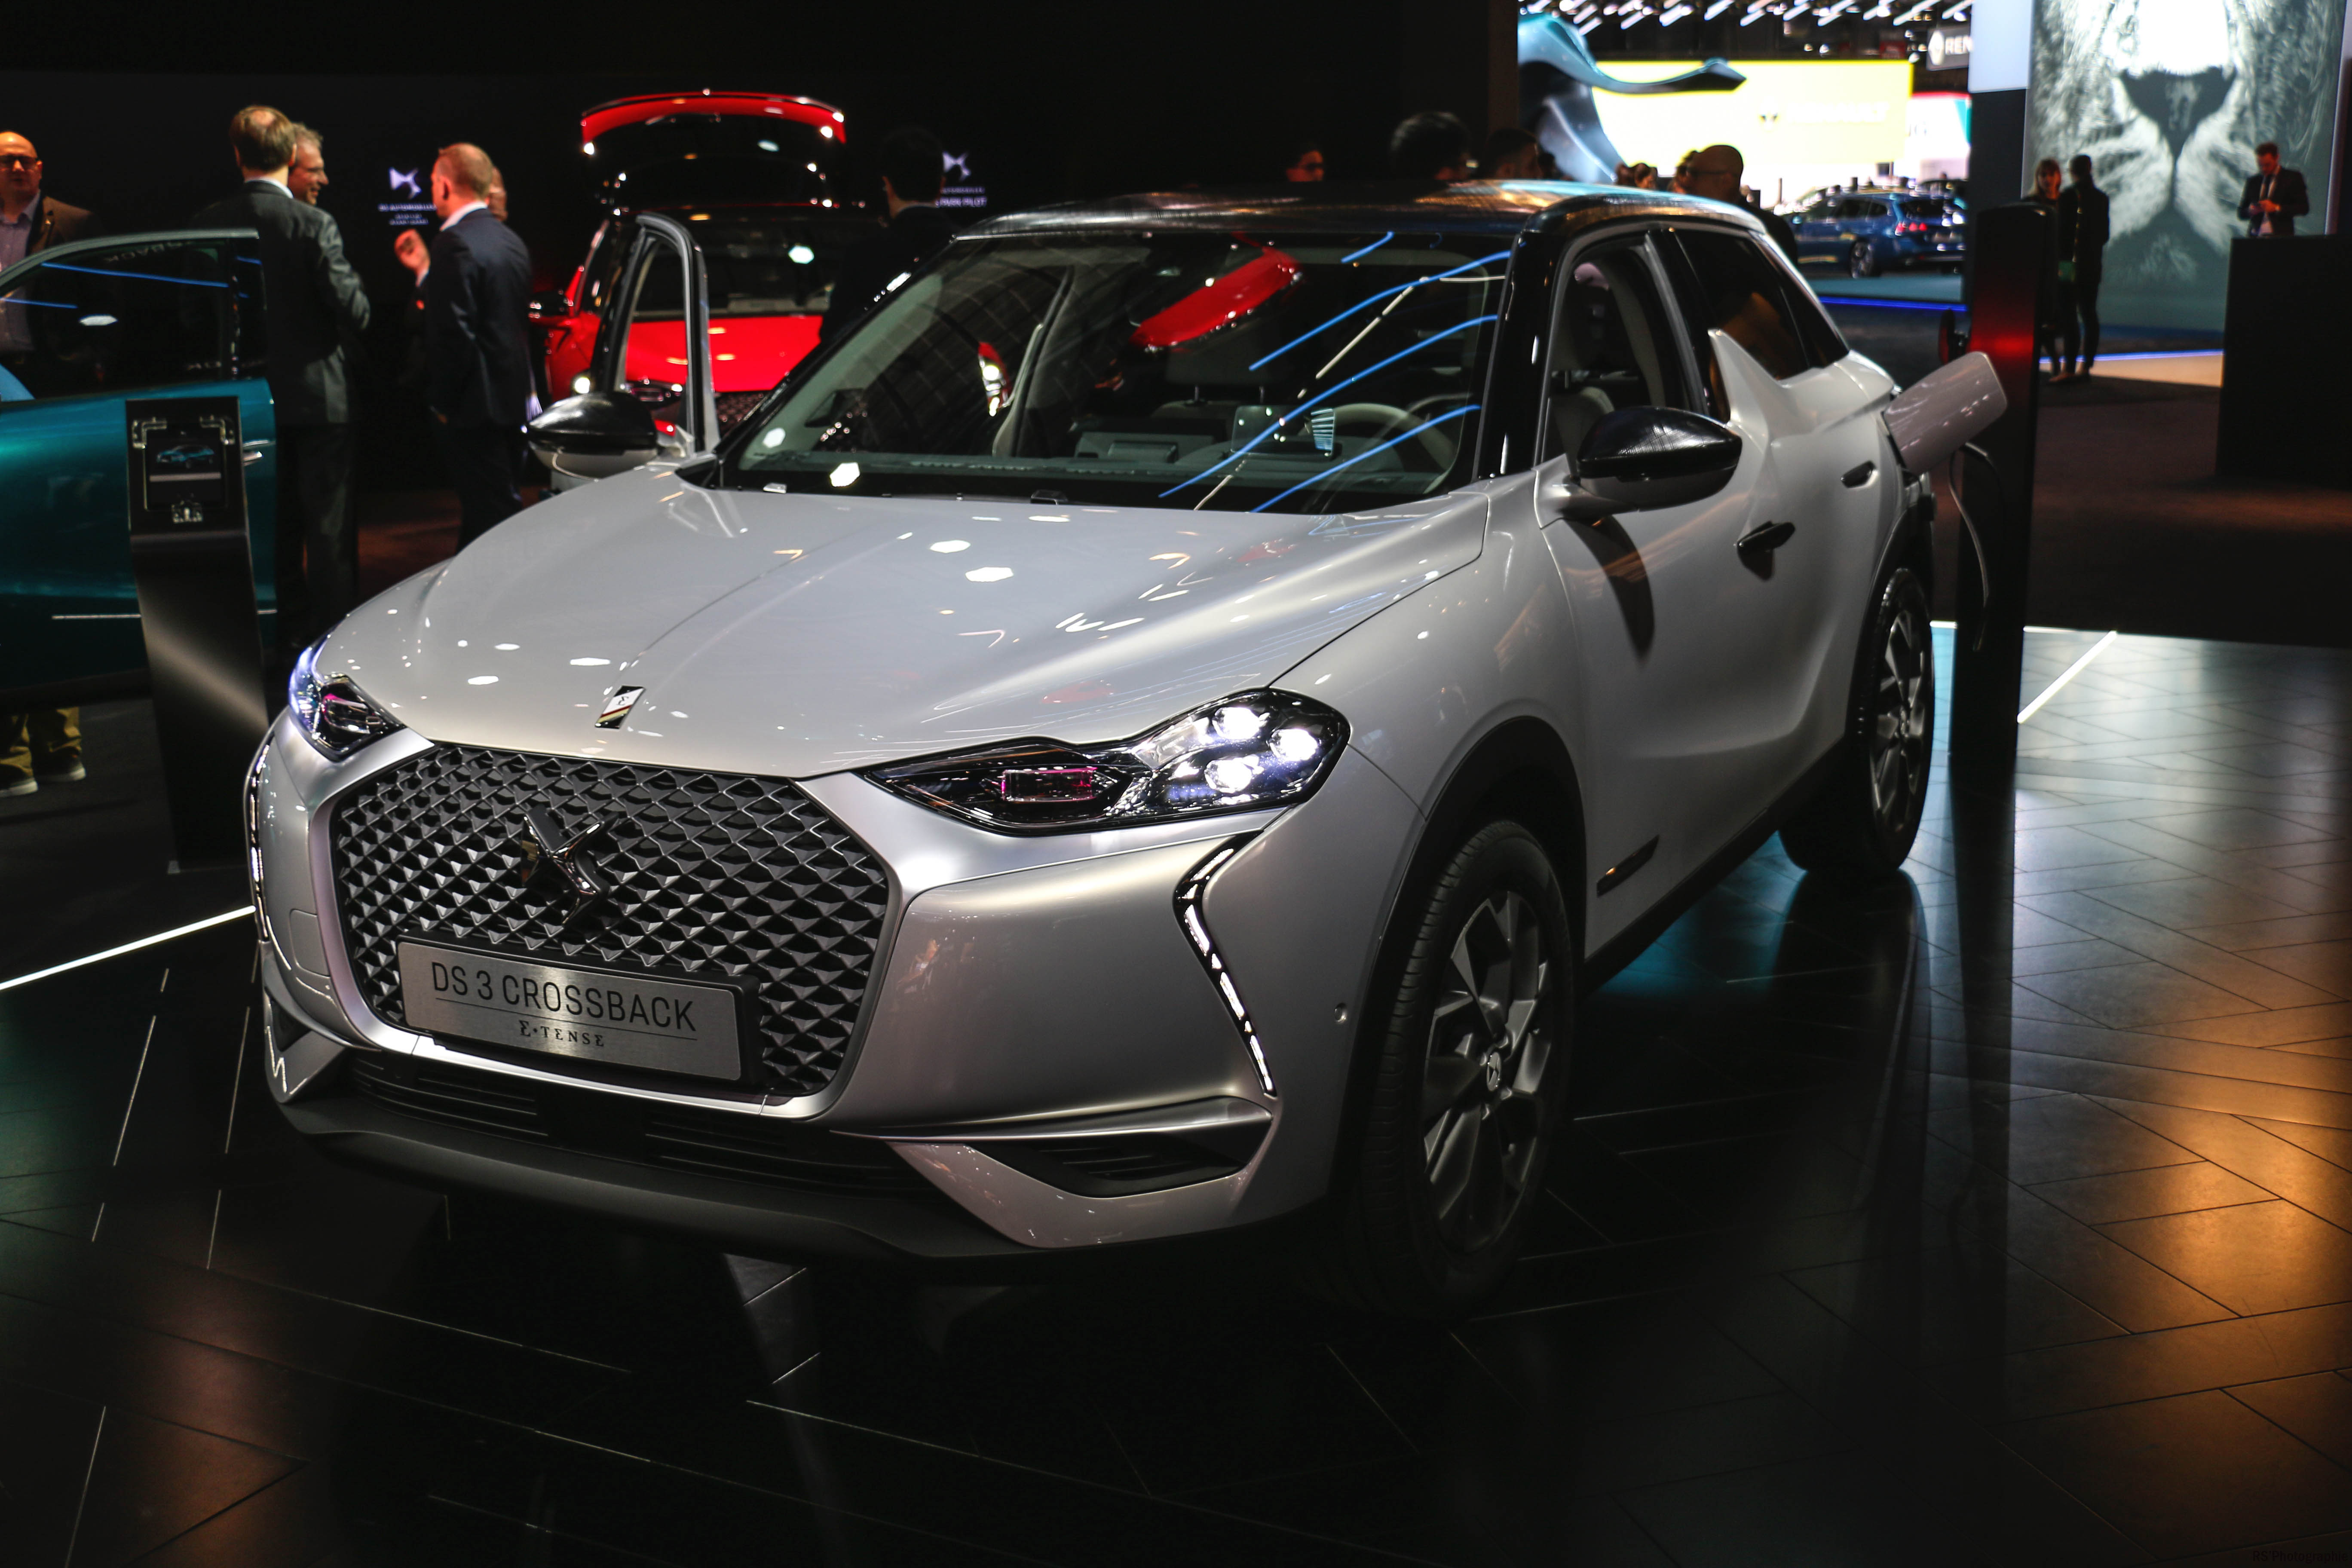 DS 3 Crossback E-Tense - front - Paris Motor Show - 2018 - Mondial Auto - photo by Arnaud Demasier RS Photographie